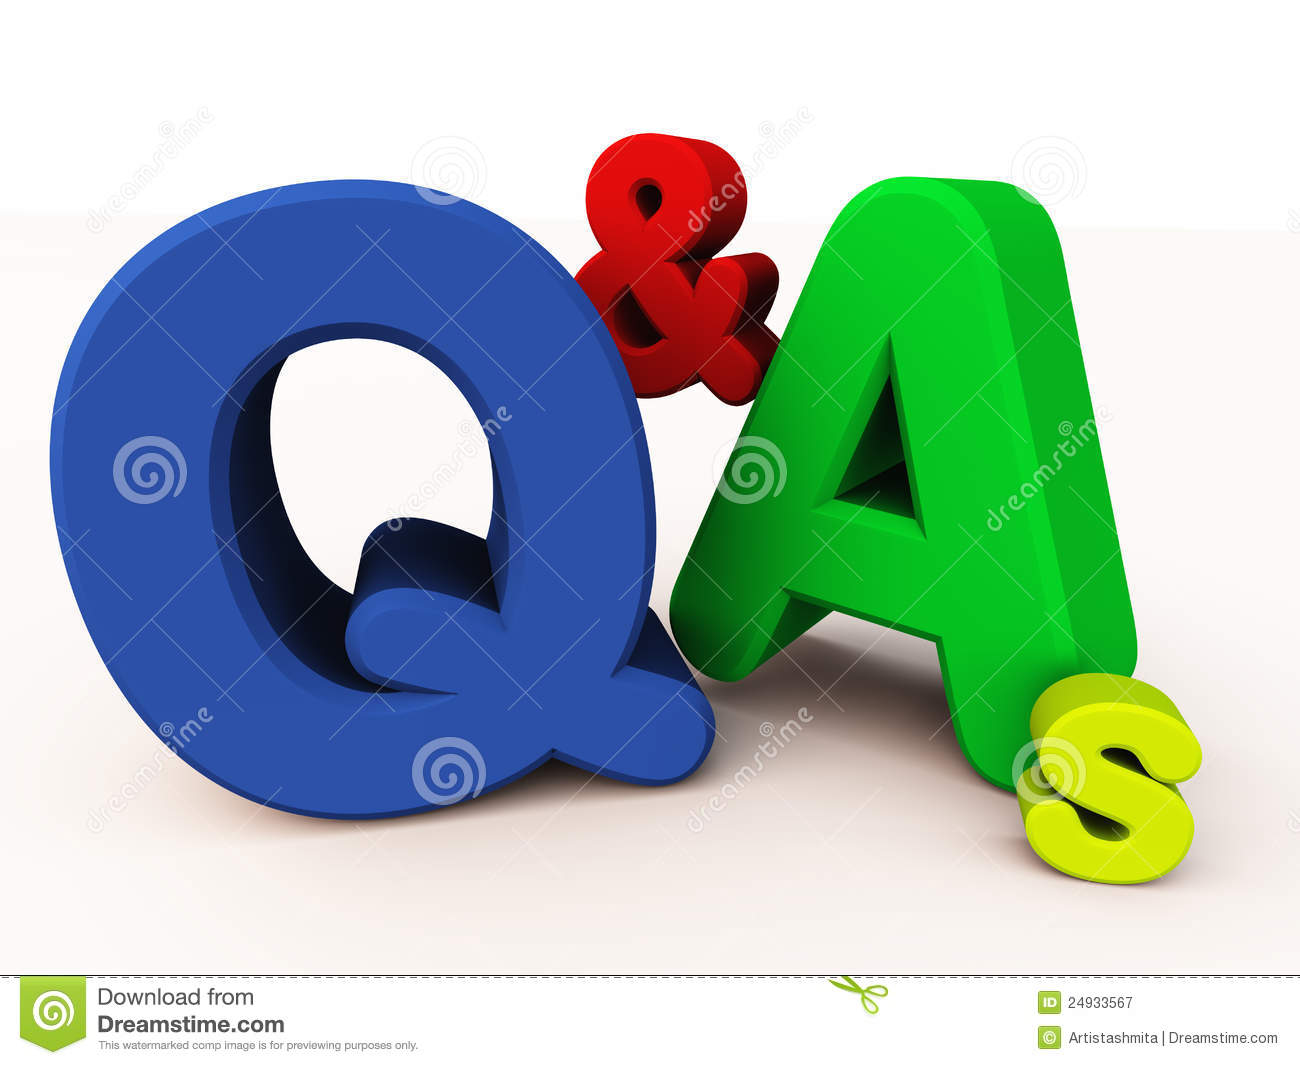 Q&As Or Question And Answers Royalty Free Stock Photography.